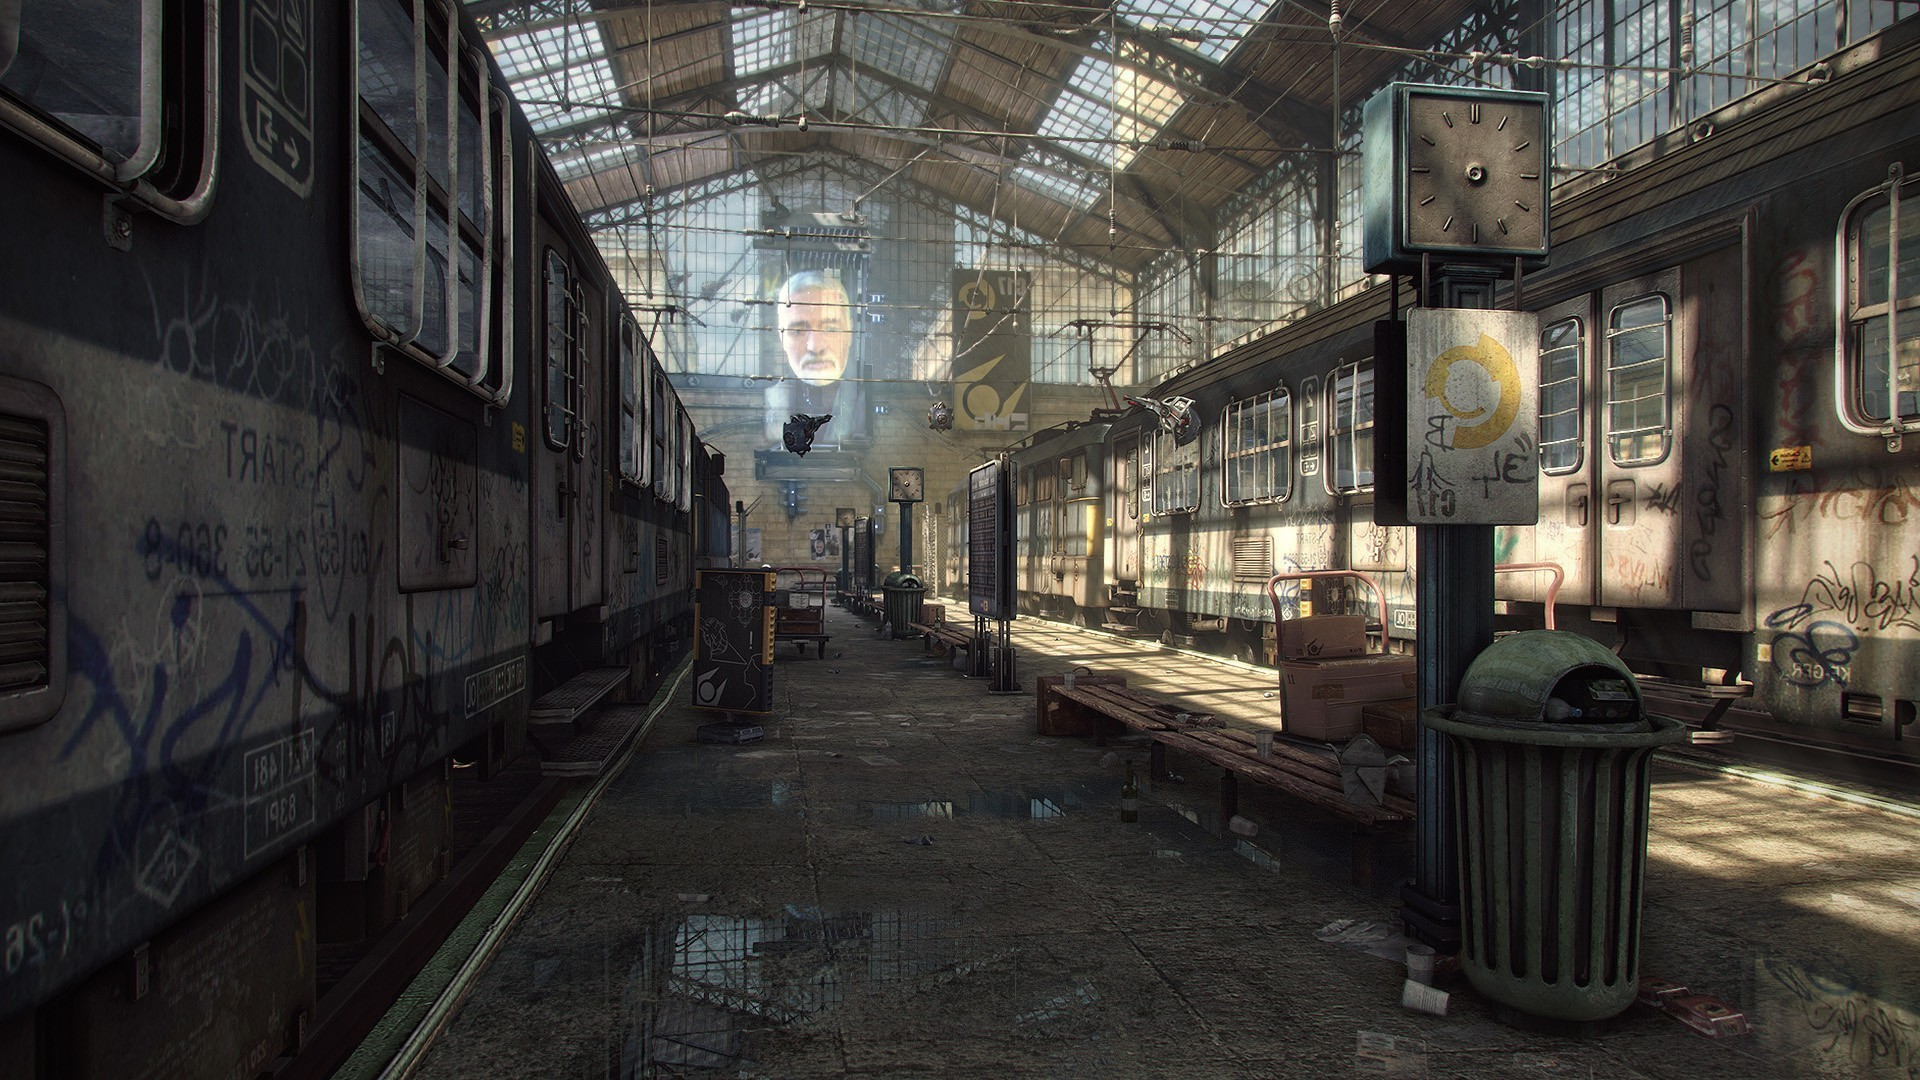 1920x1080 Unreal Engine 4, Half Life 2, Video Games, Apocalyptic, City 17 Wallpapers  HD / Desktop and Mobile Backgrounds